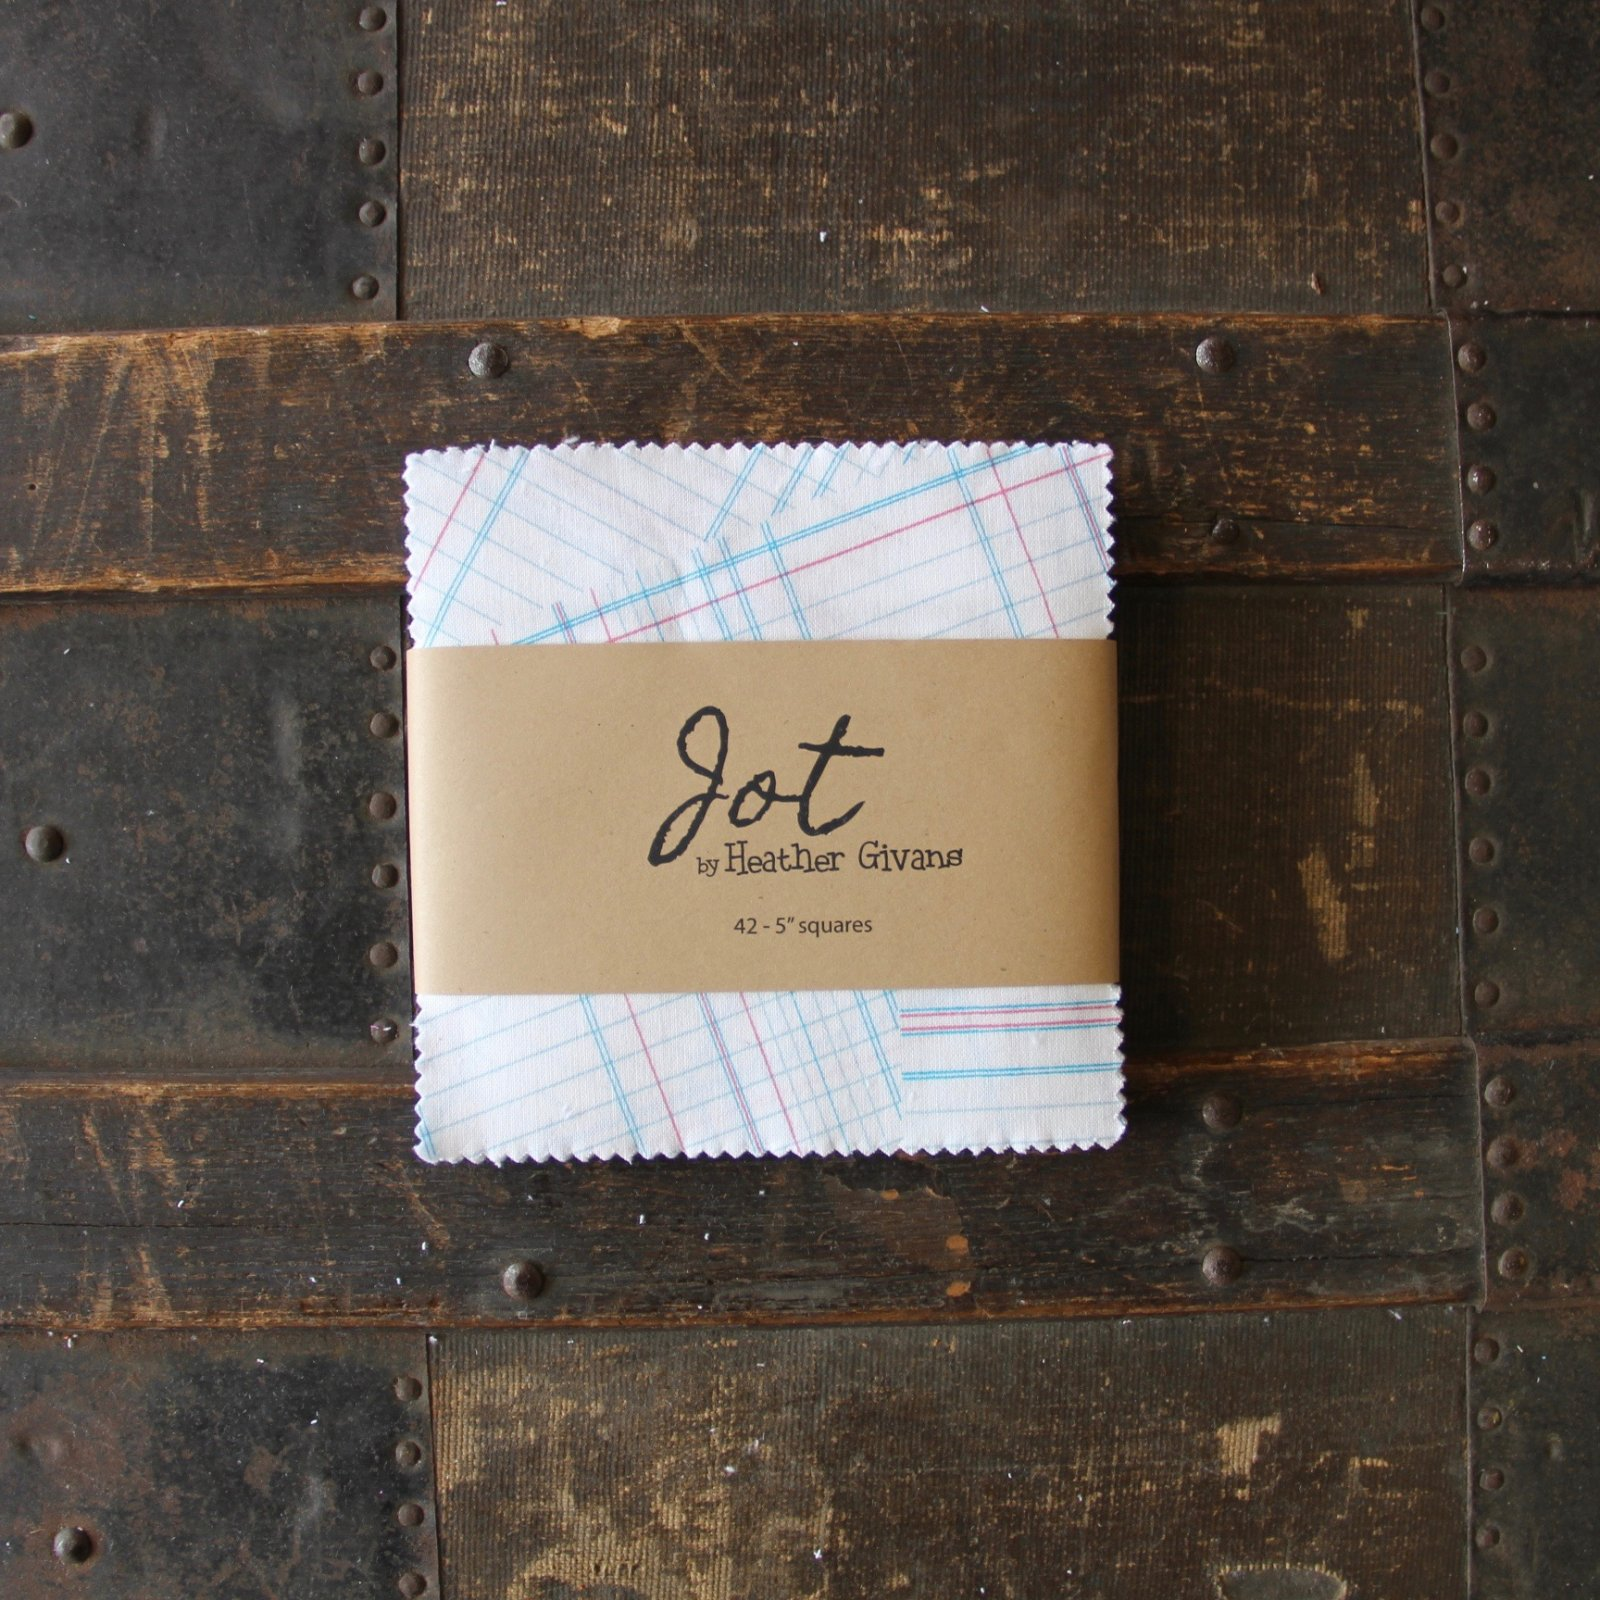 Jot Charms - (42) 5 squares